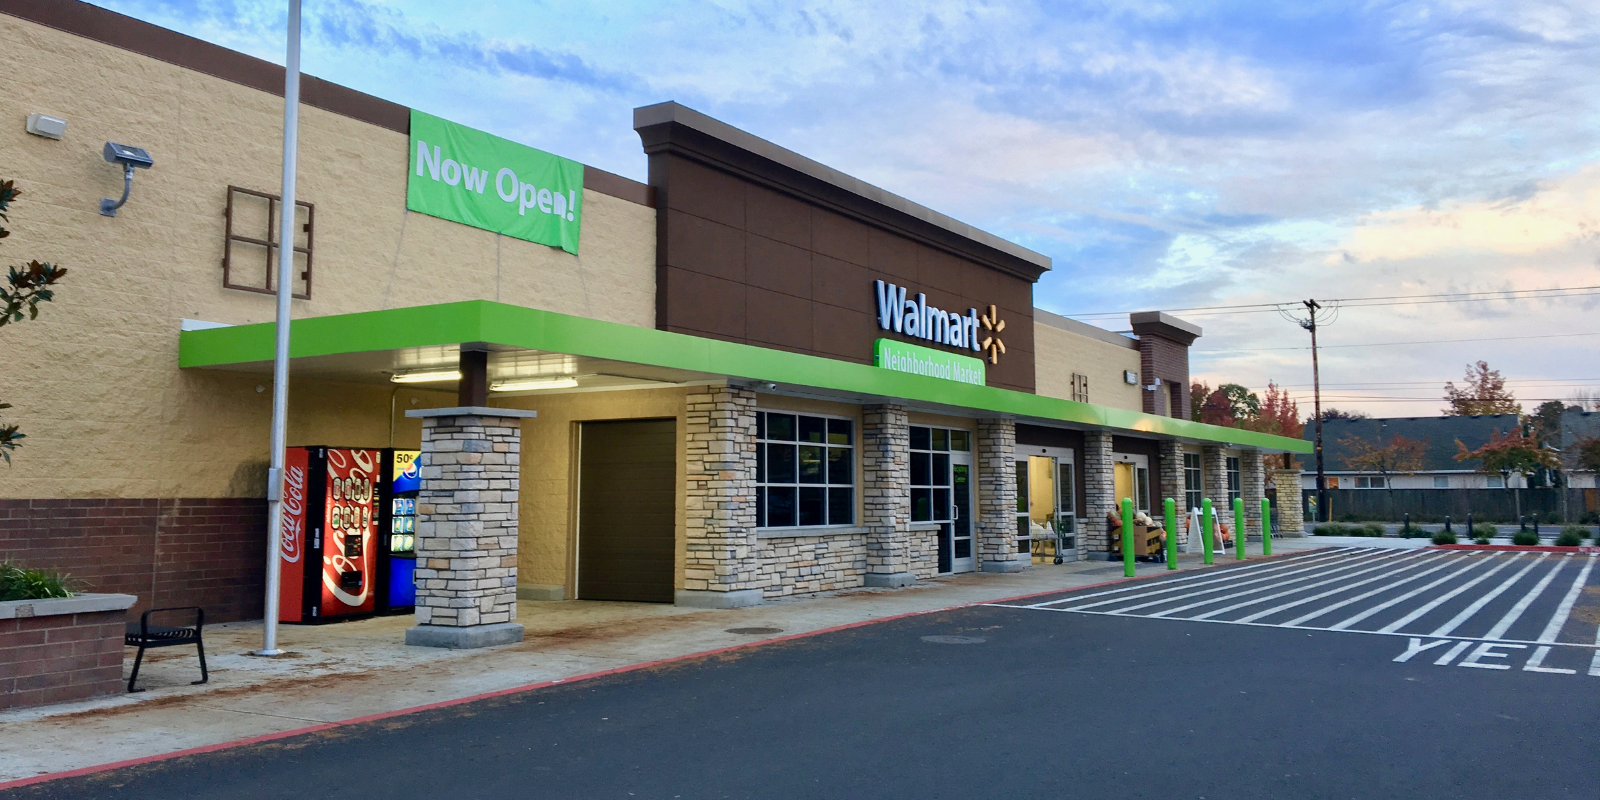 Walmart to raise pay for 425,000 of its employees